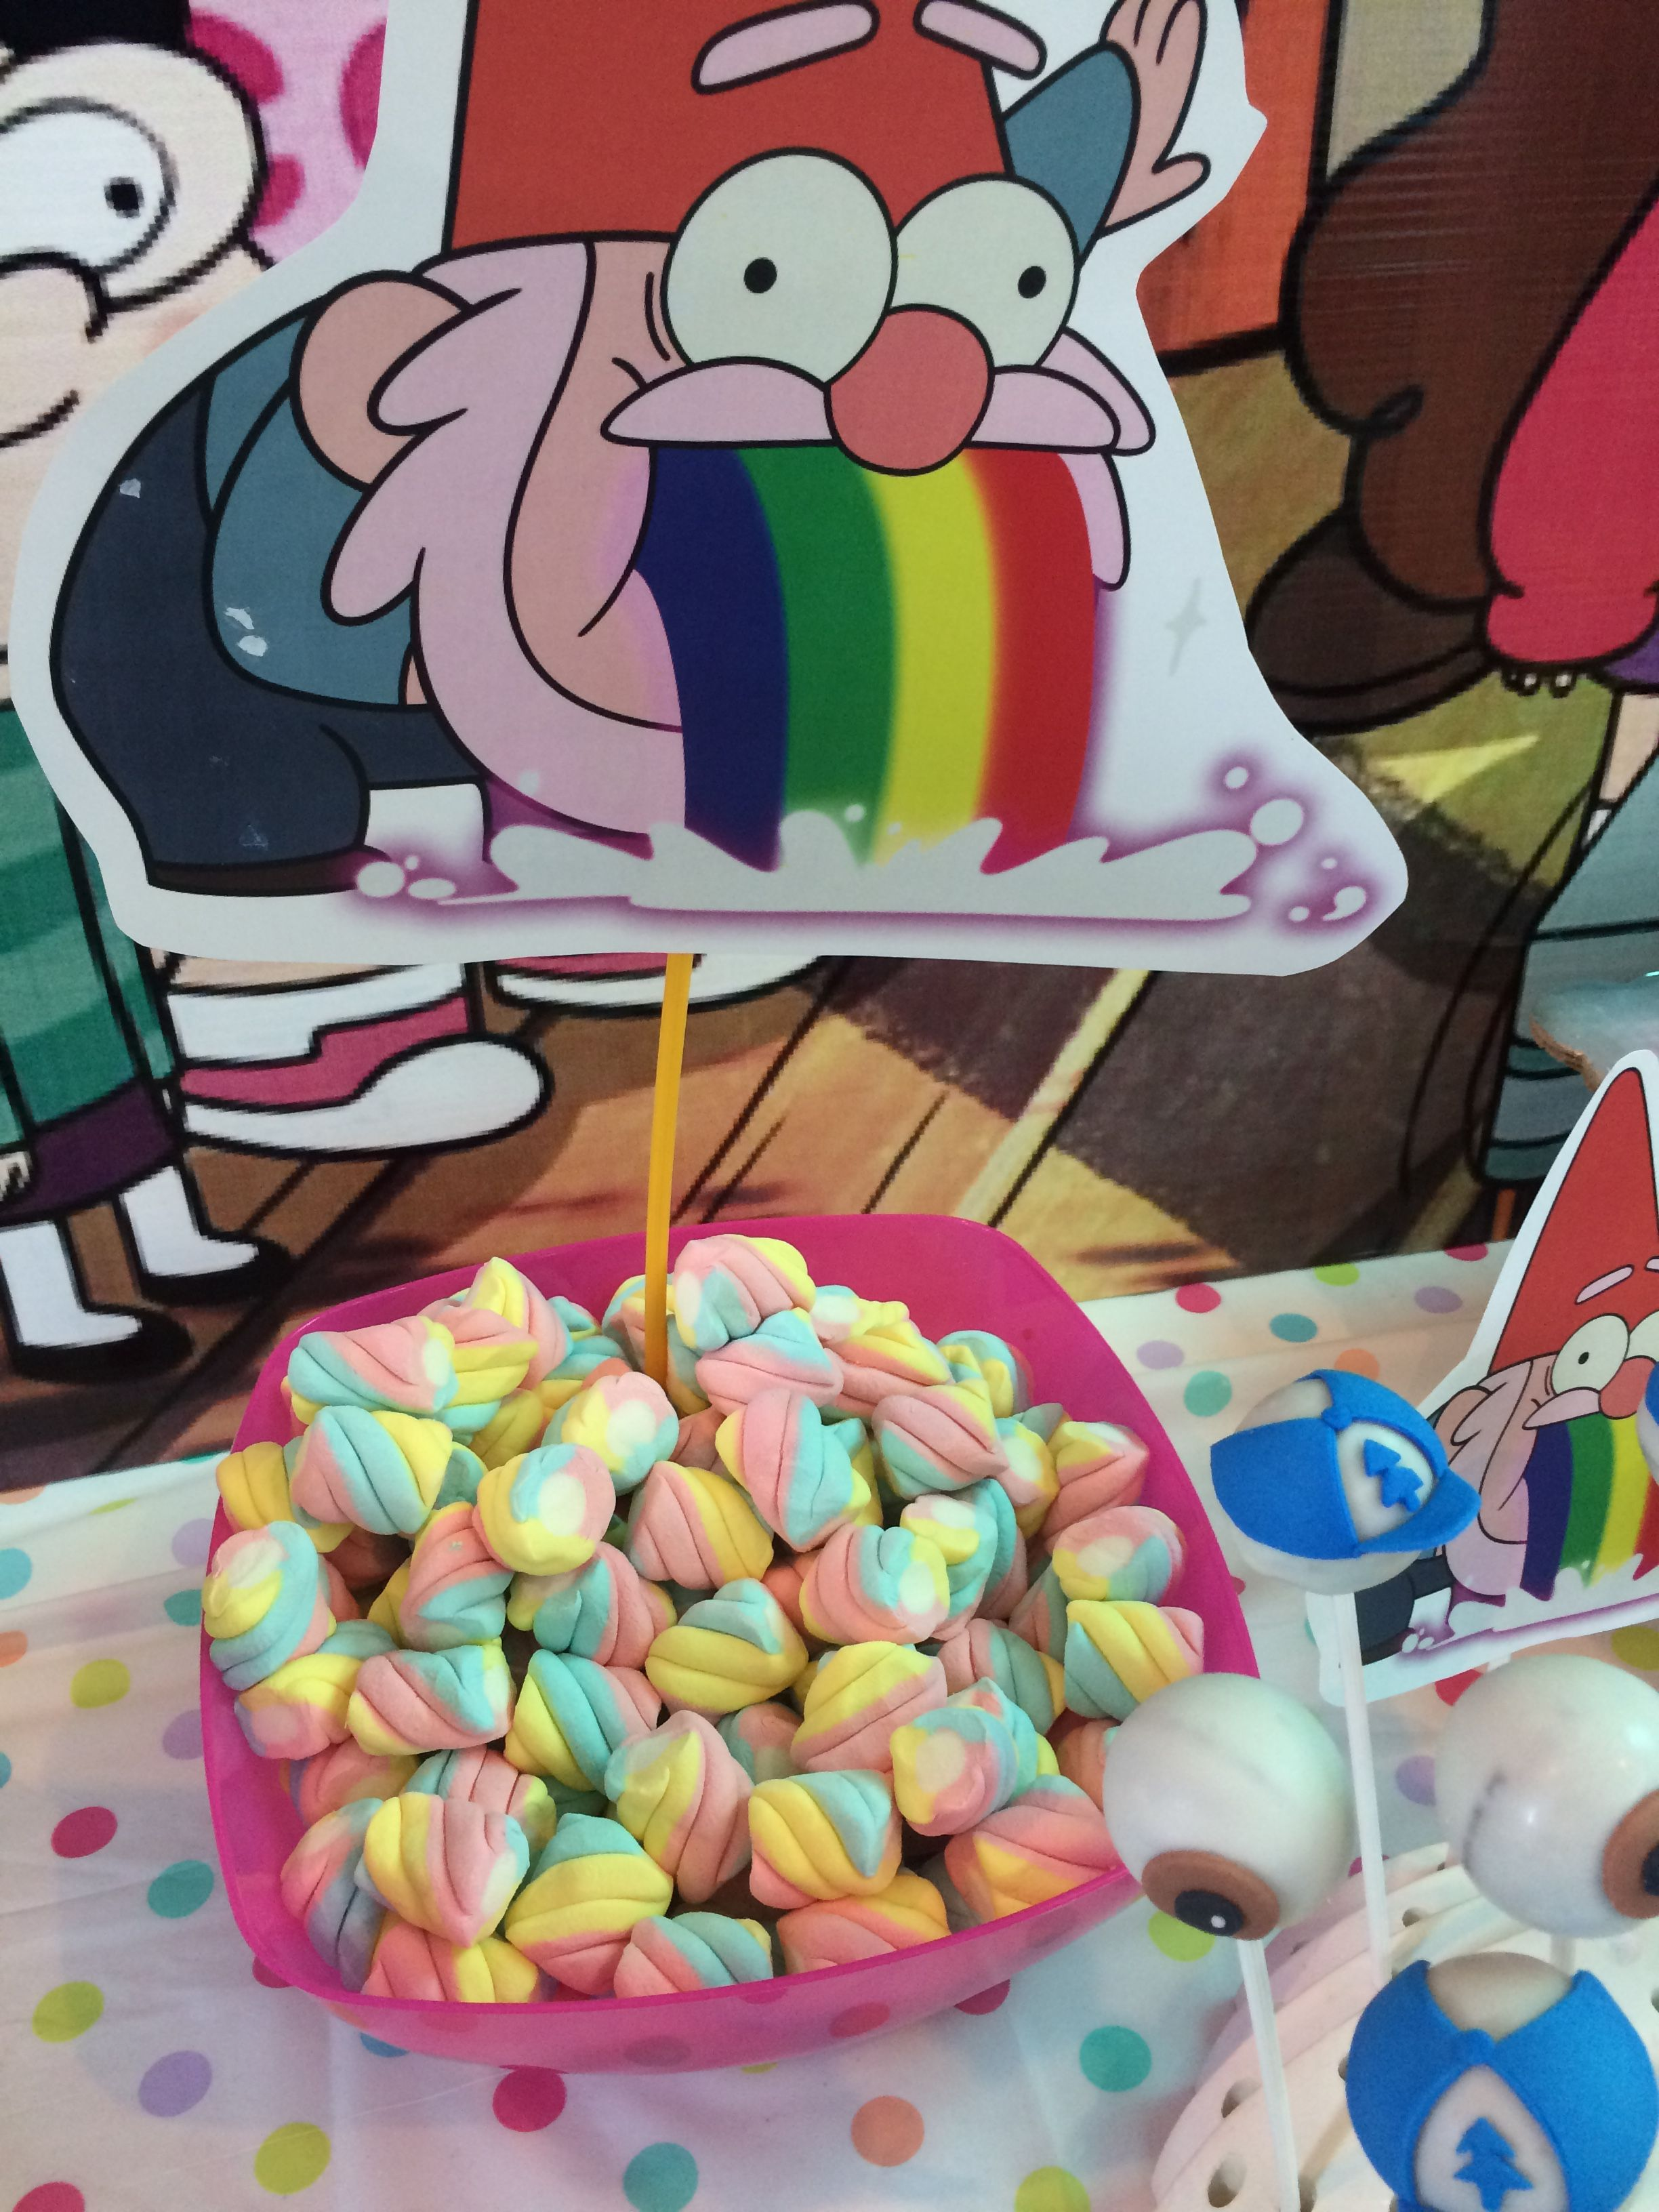 Gnomo Arcoiris Gravity Falls Party Fiesta Tematica Gravity Falls